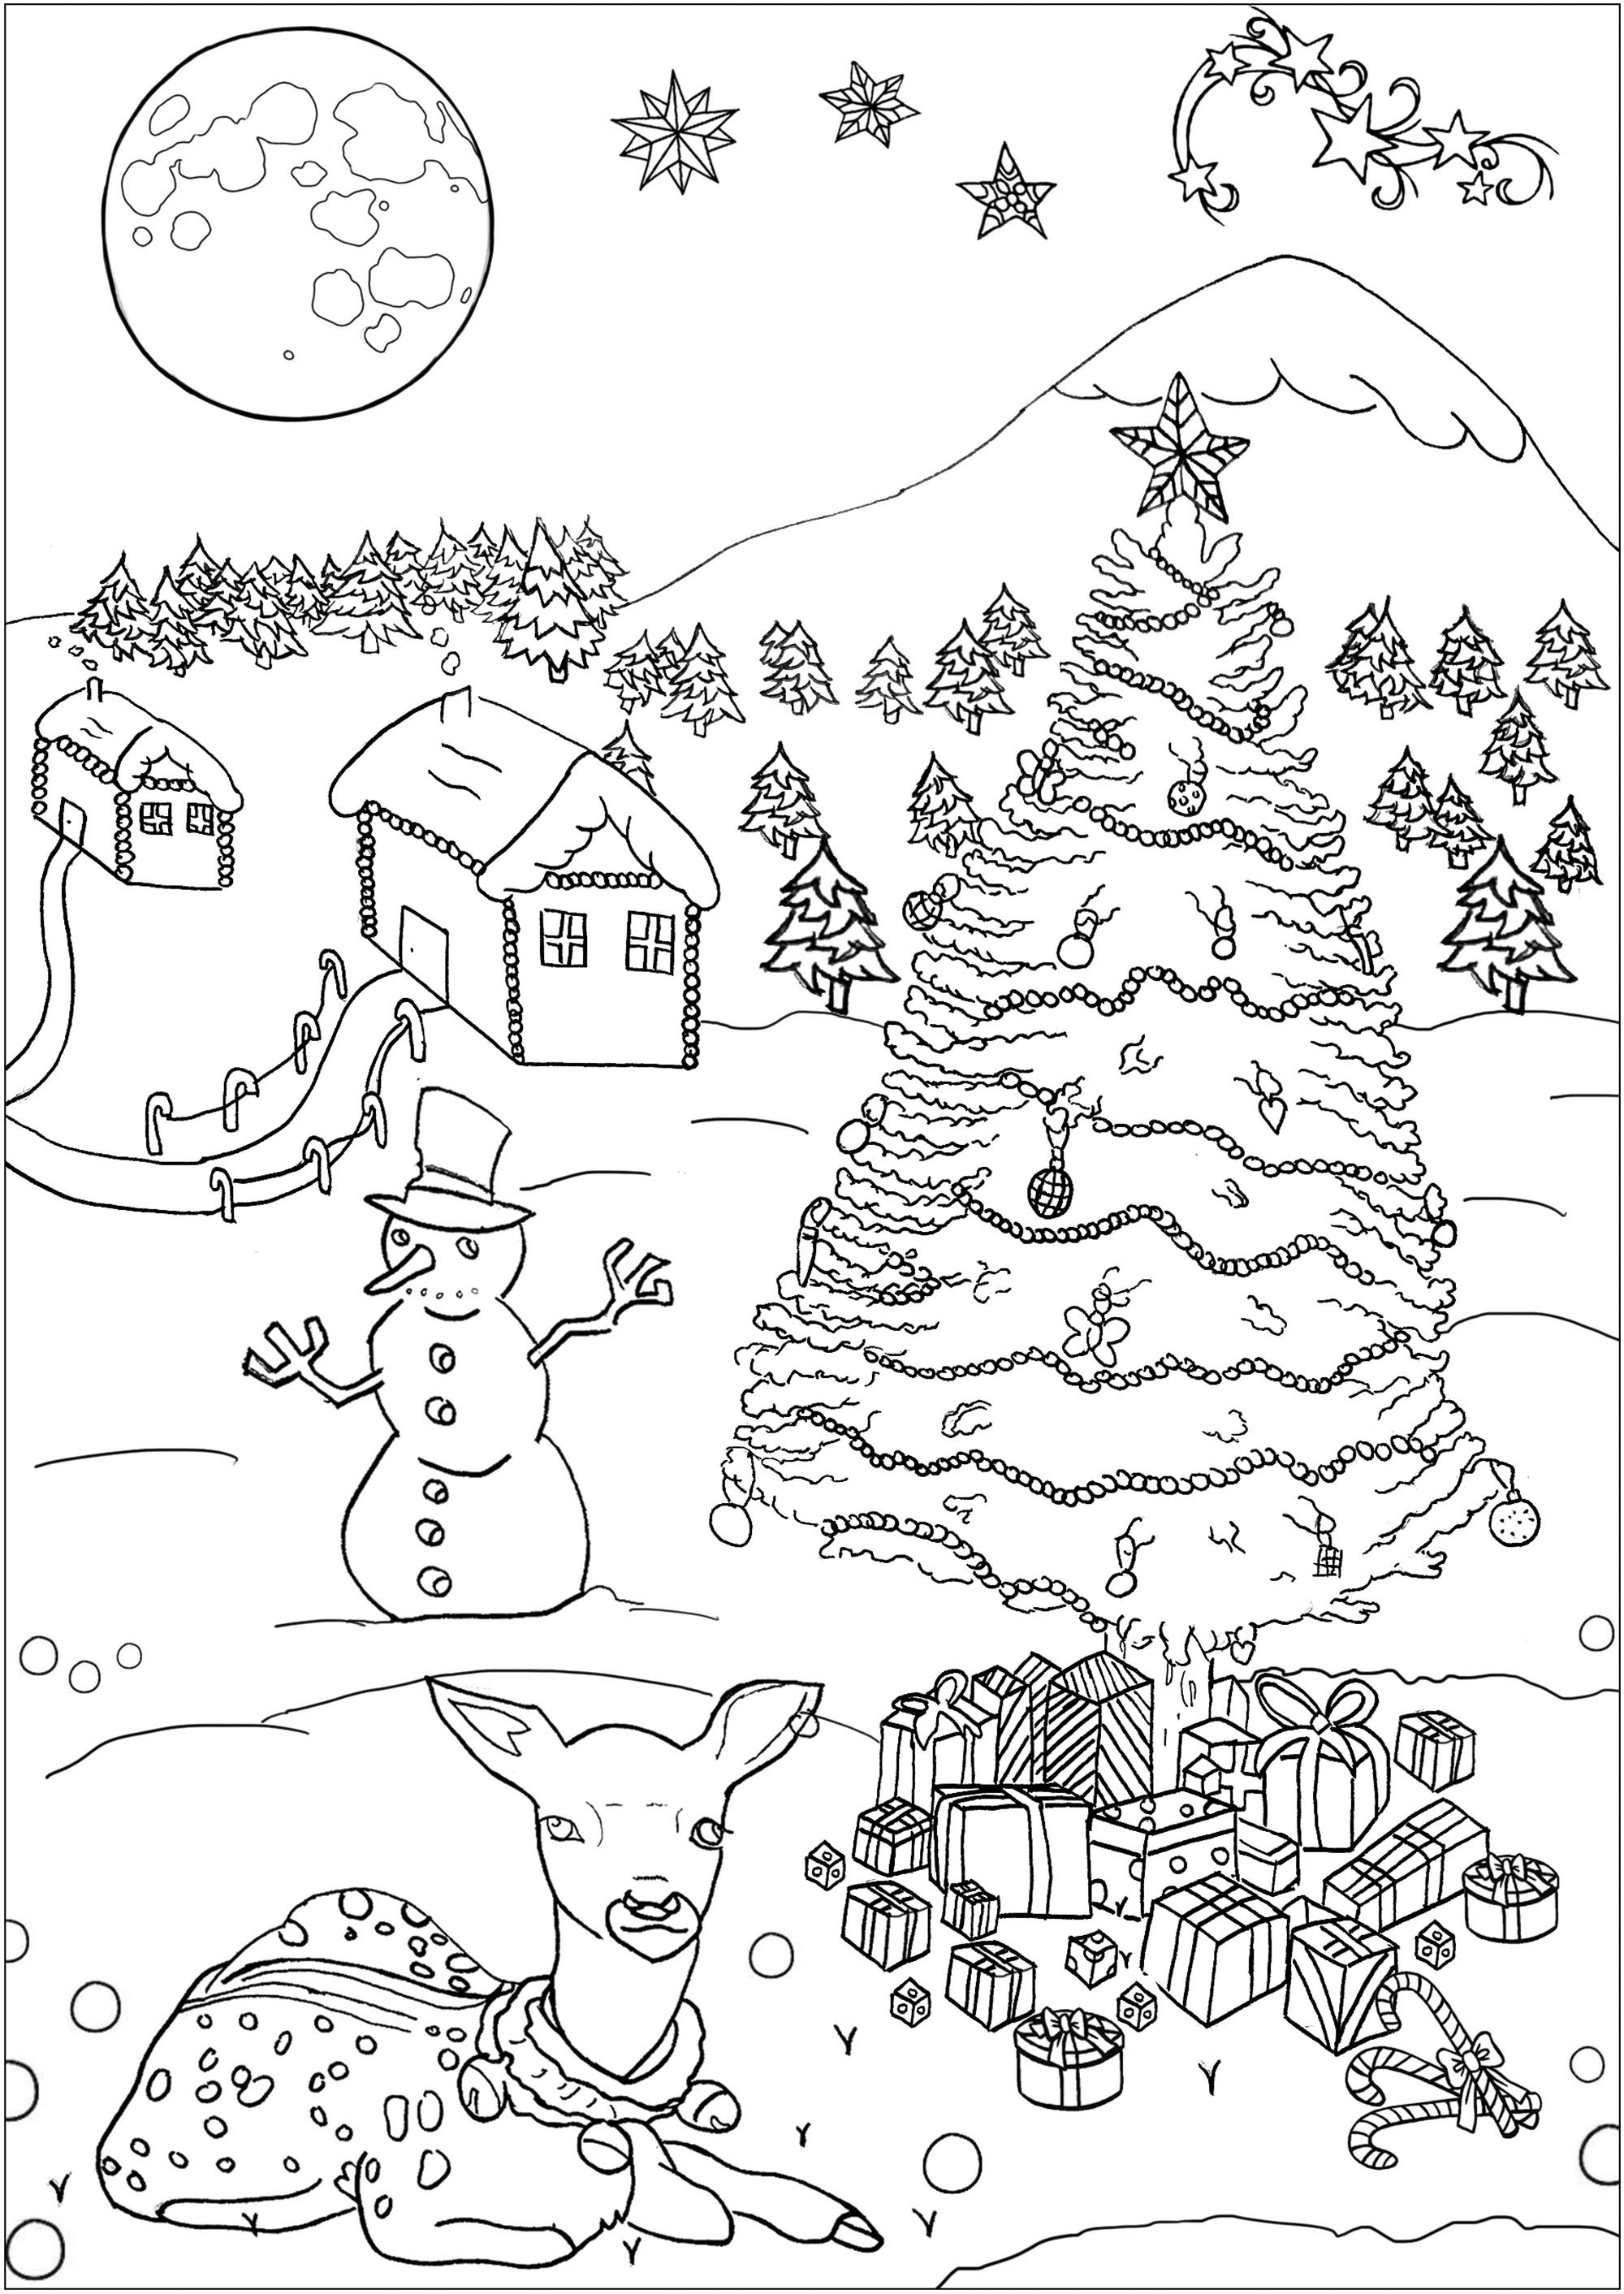 Christmas Color Pages For Kids Christmas Free To Color For Children Christmas Kids Coloring Pages